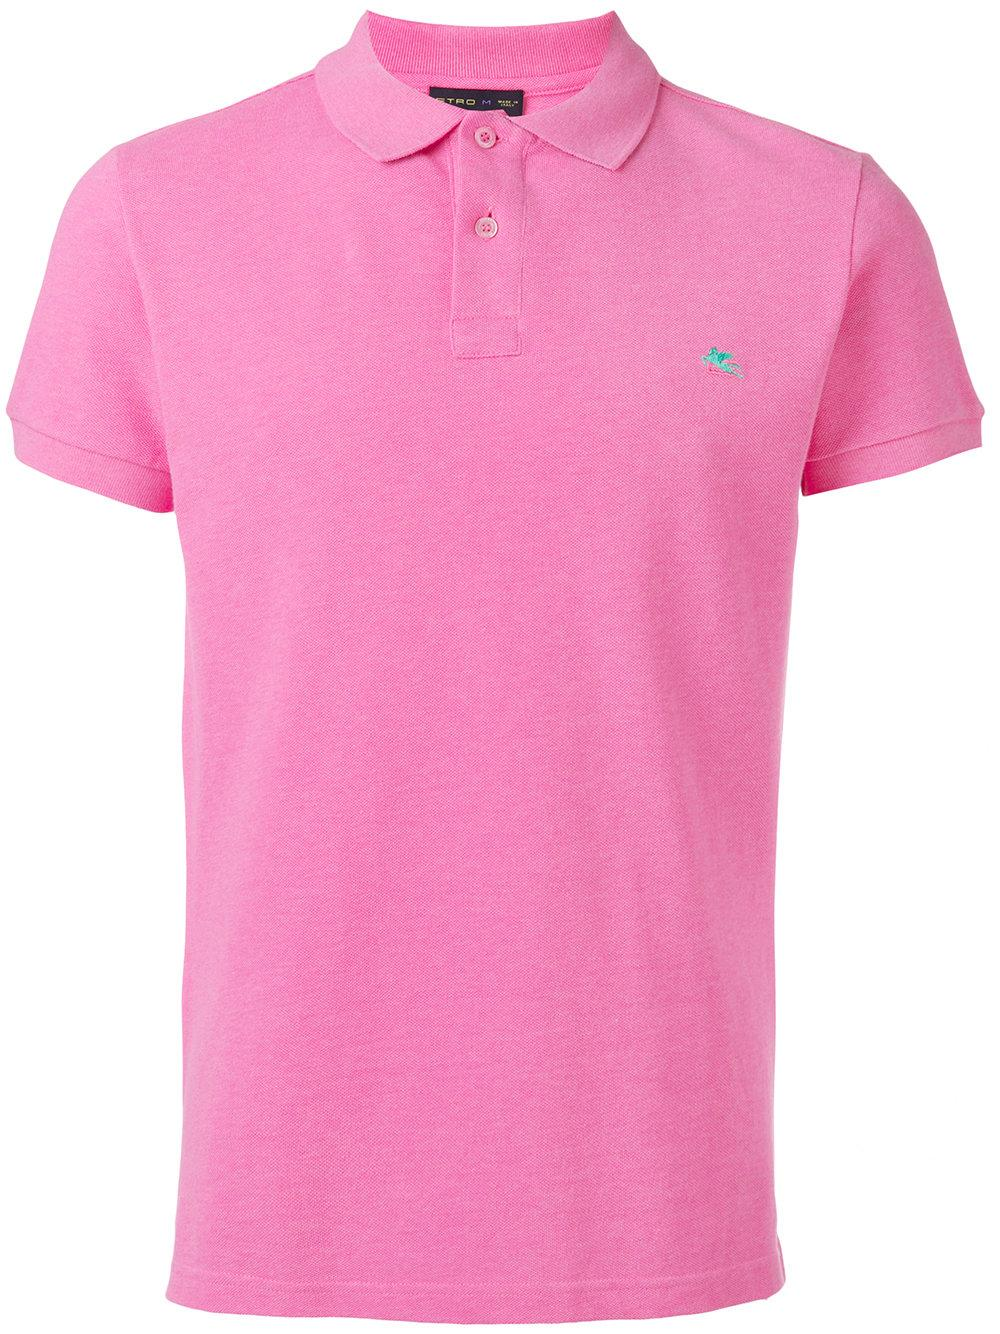 Lyst etro embroidered logo polo shirt in pink for men for Work polo shirts embroidered